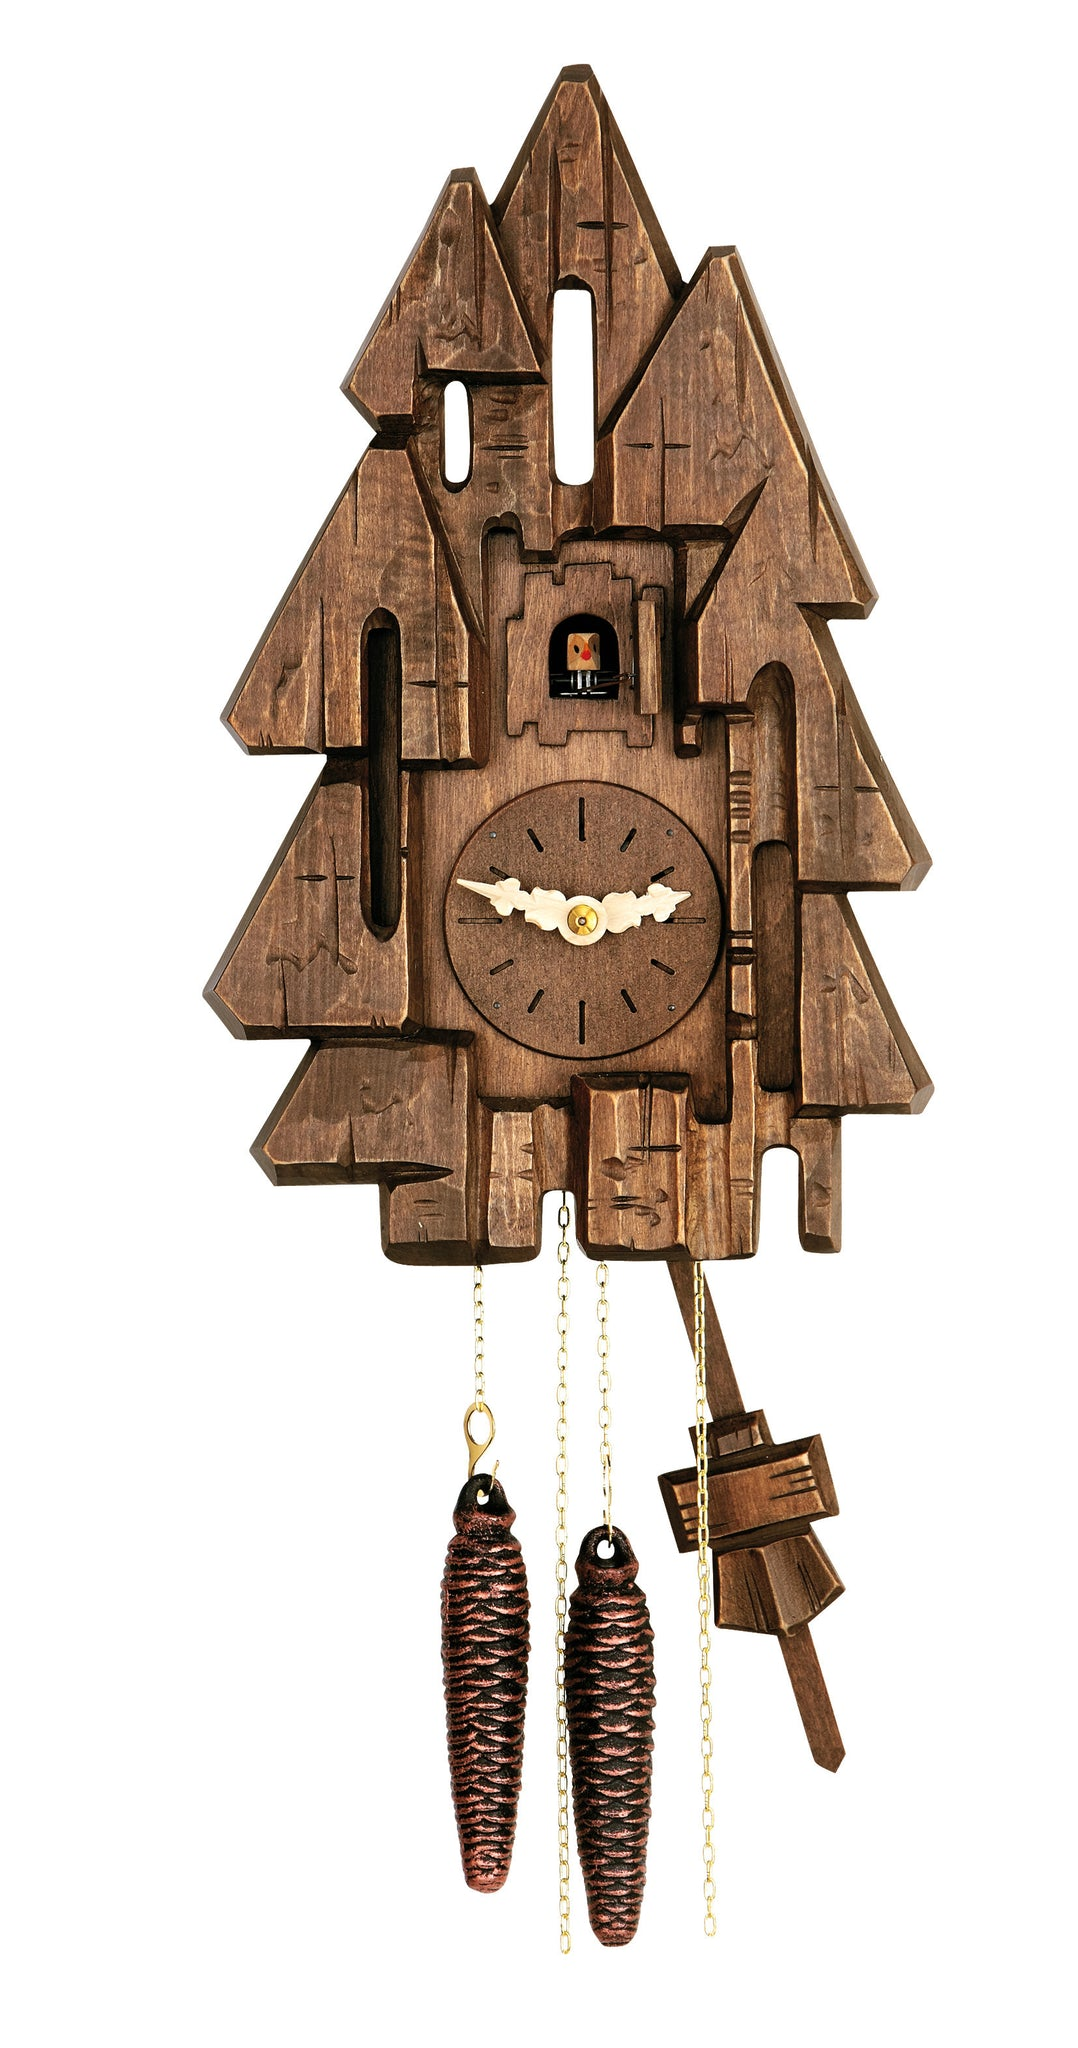 Cuckoo Clock Christmas Three 1-Day Movement - Cuckoo Clock Meister